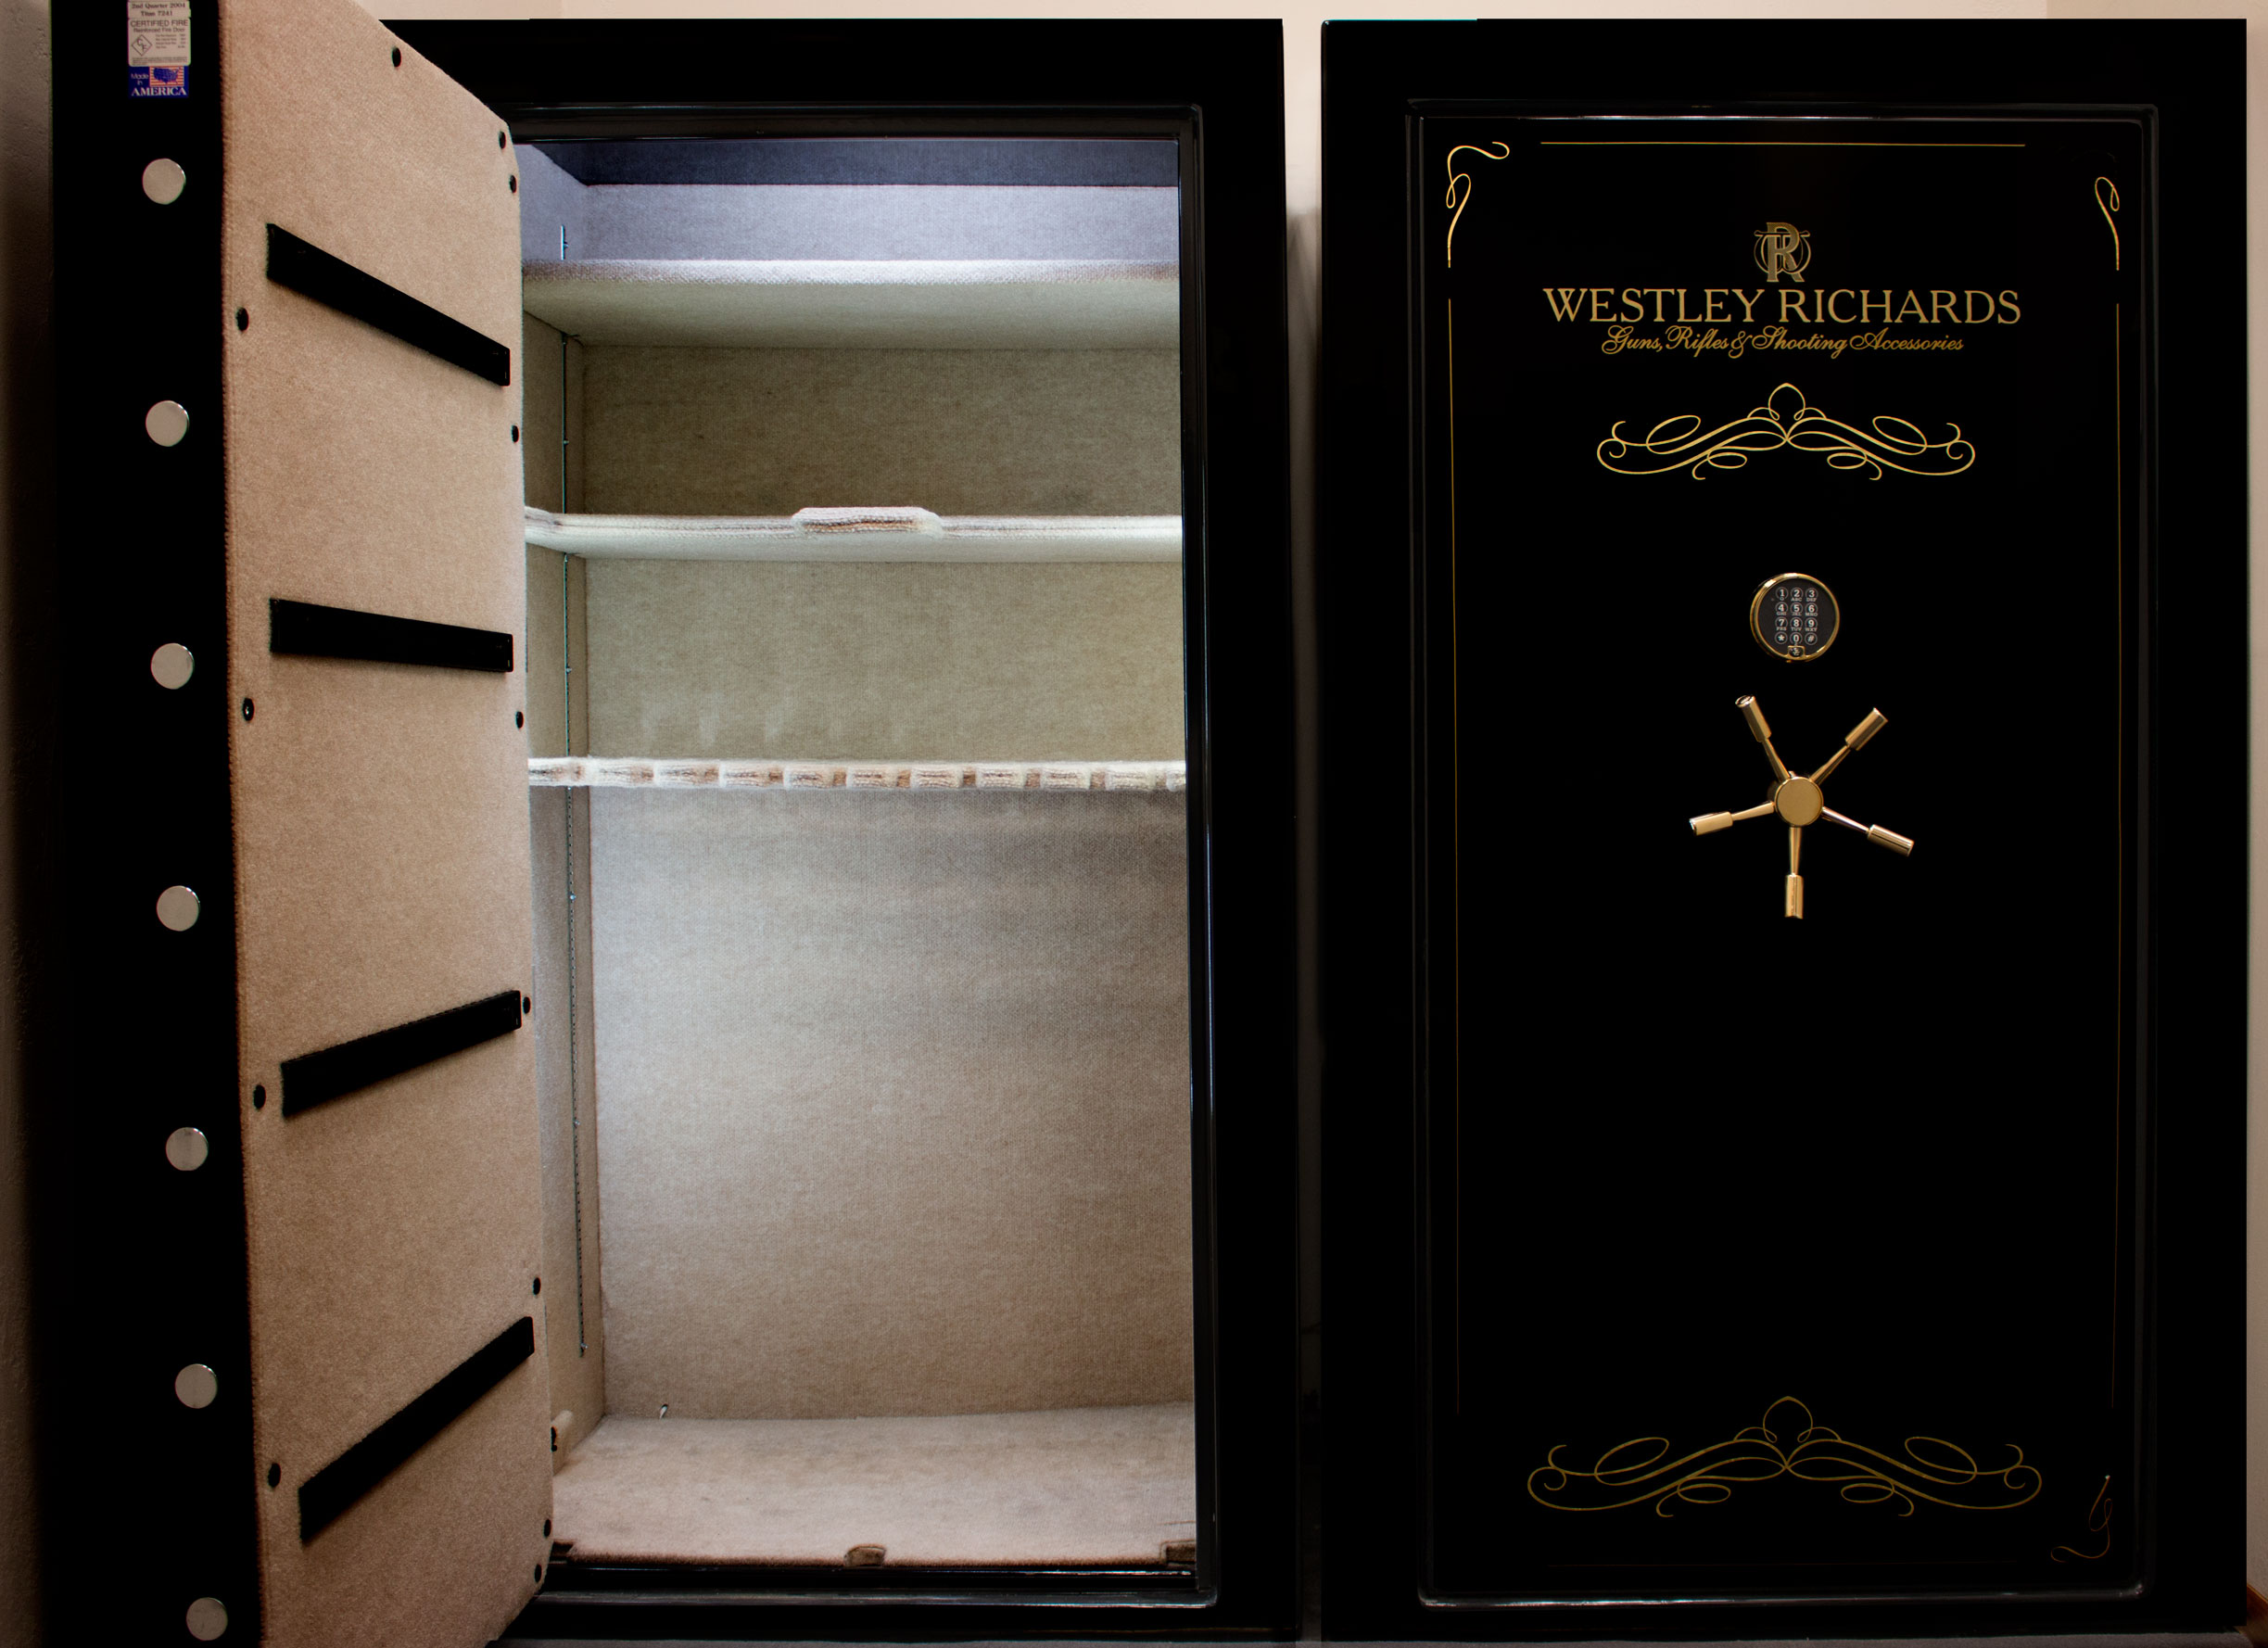 4 'Used' Westley Richards Fort Knox Titan Model 7241 Safes. - For sale!